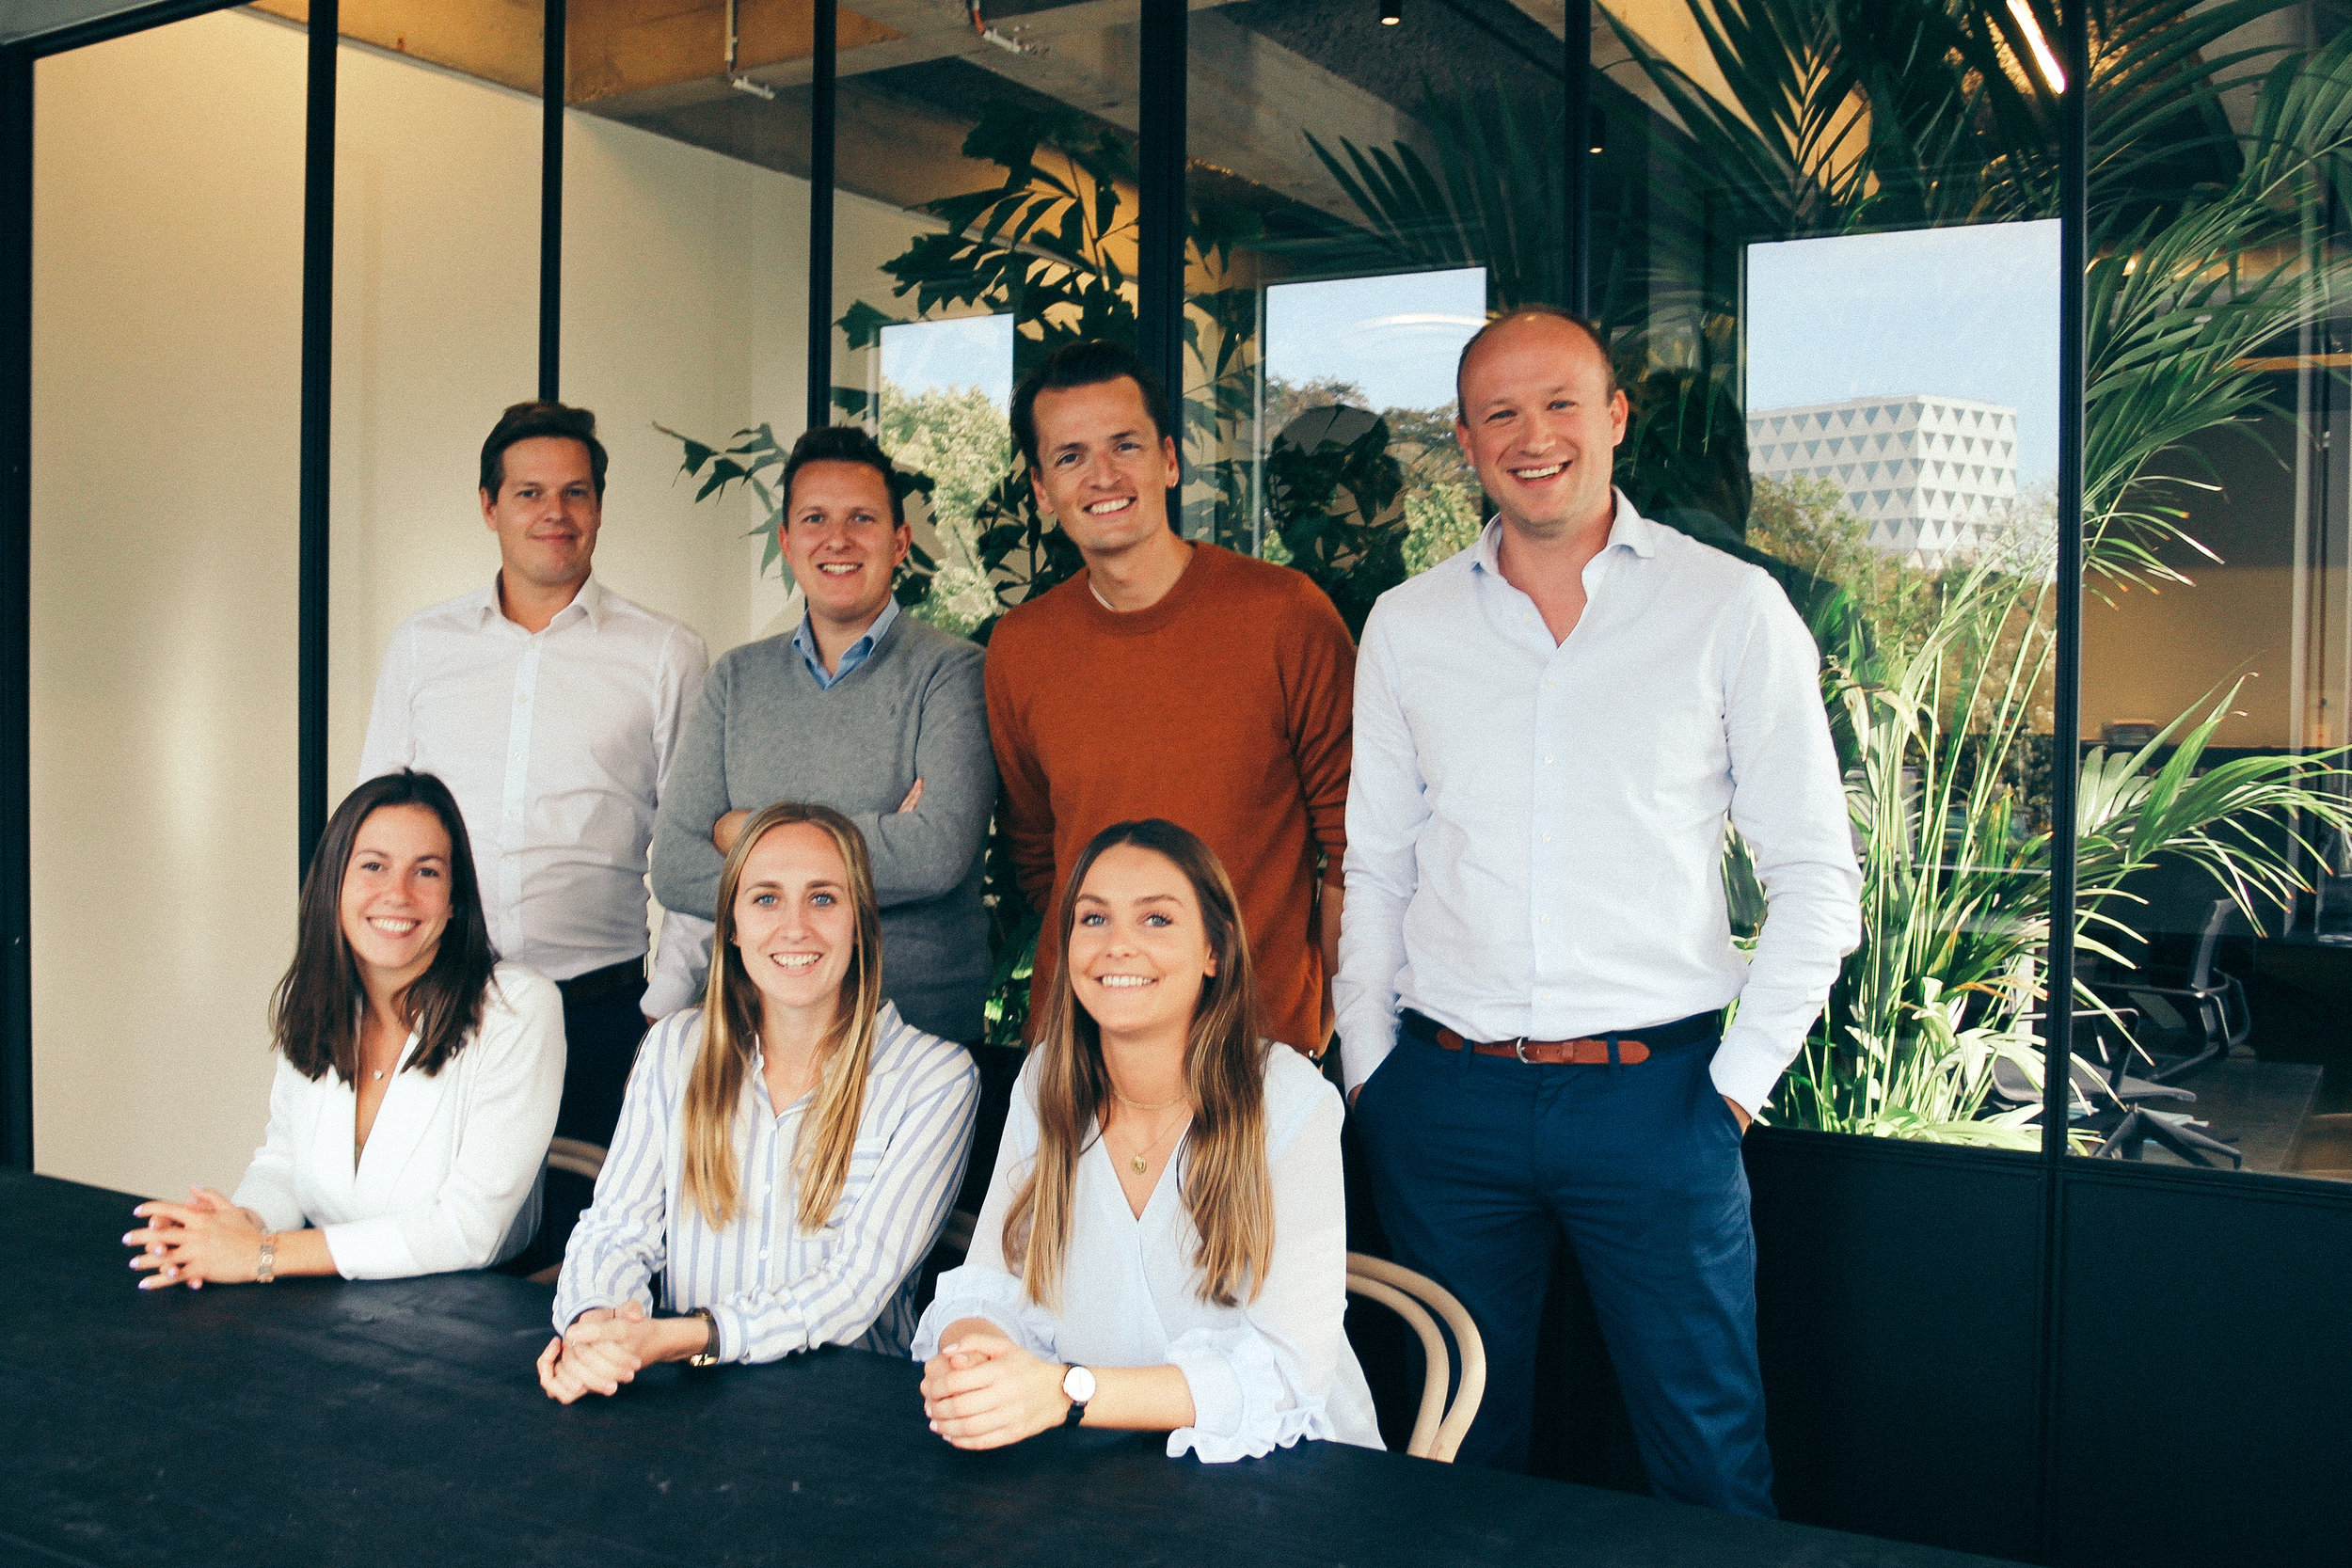 The Lawtree Advocaten team in their Fosbury & Sons Harmony office.